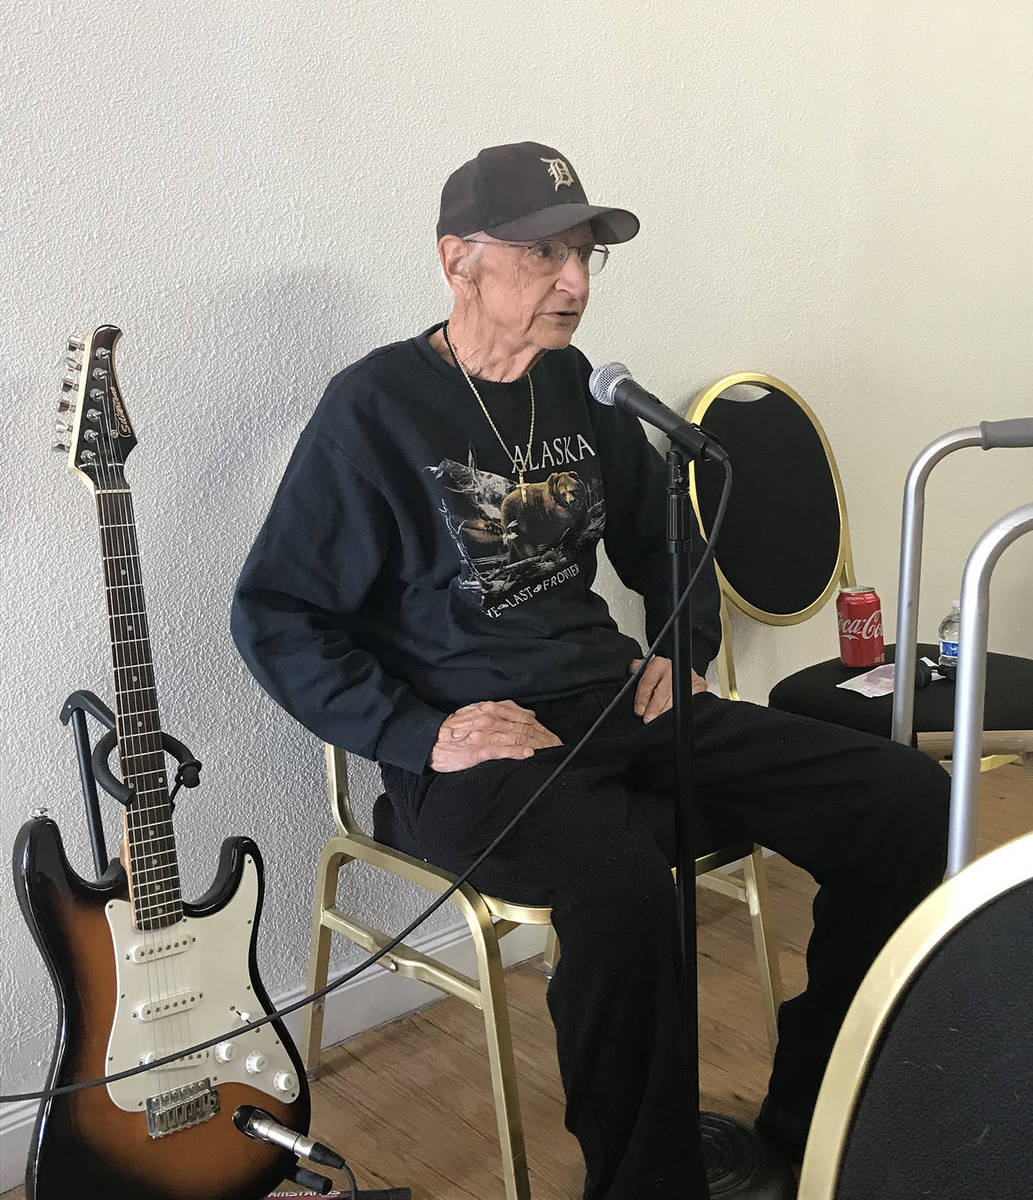 Robin Hebrock/Pahrump Valley Times The memory of Pahrump GriefShare founder Pete Giordano was h ...